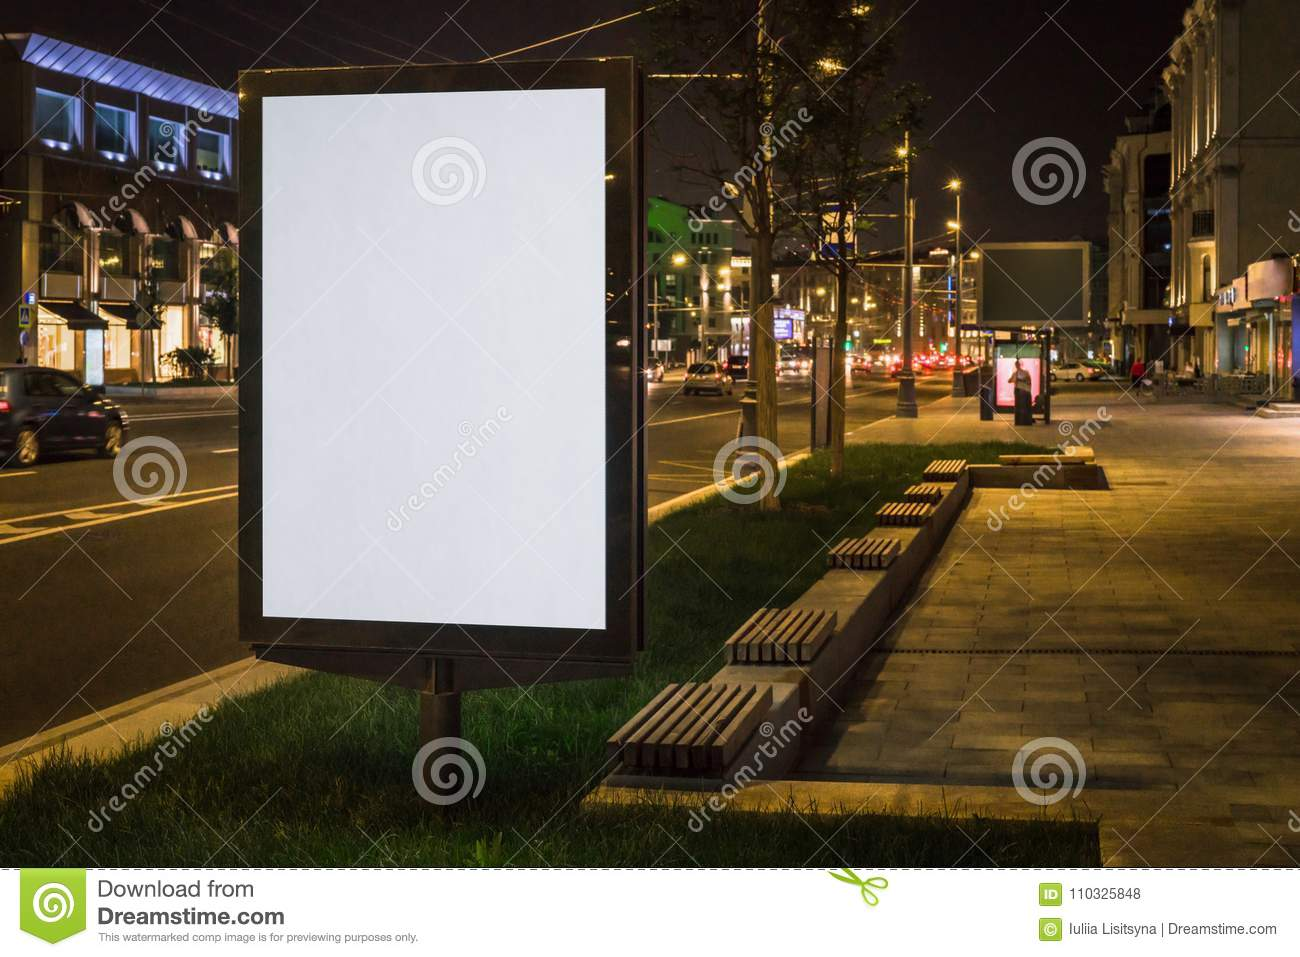 Vertical blank glowing billboard on night city street. In background buildings and road with cars. Mock up.